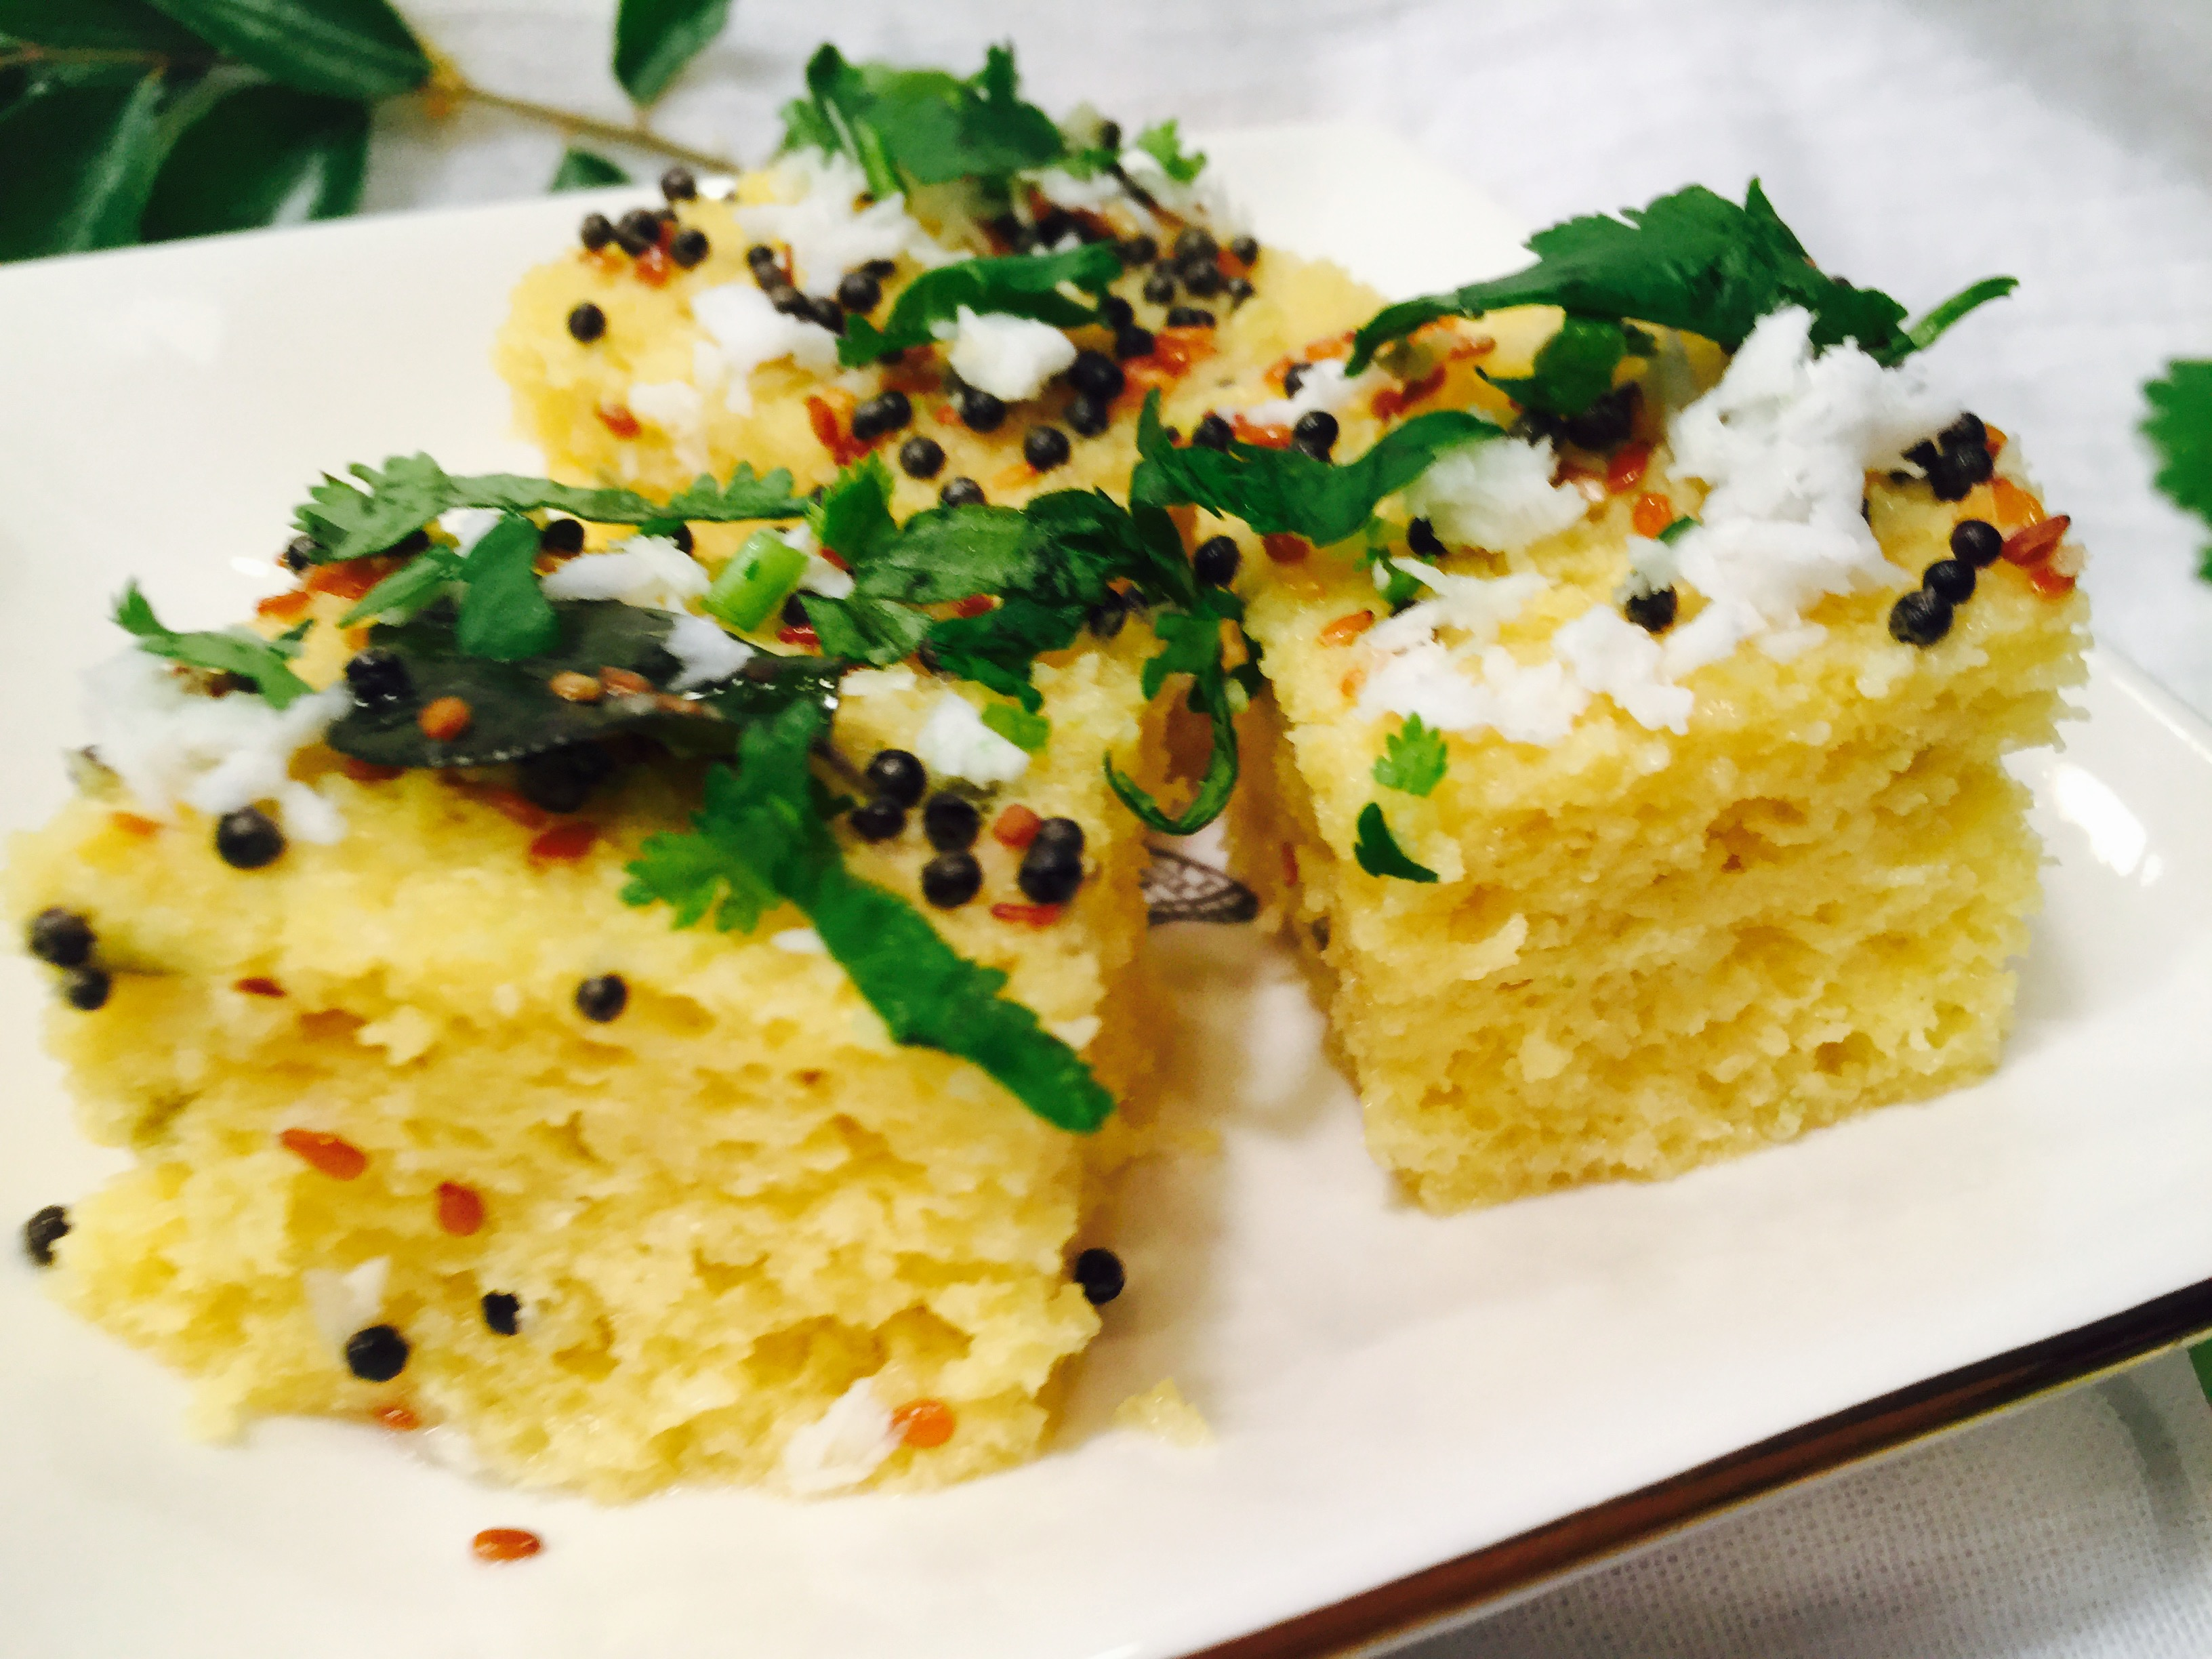 Instant khaman dhokla with tipstricks for softspongy dhokla food instant khaman dhokla with tipstricks for softspongy dhokla food fitness beauty and more forumfinder Images